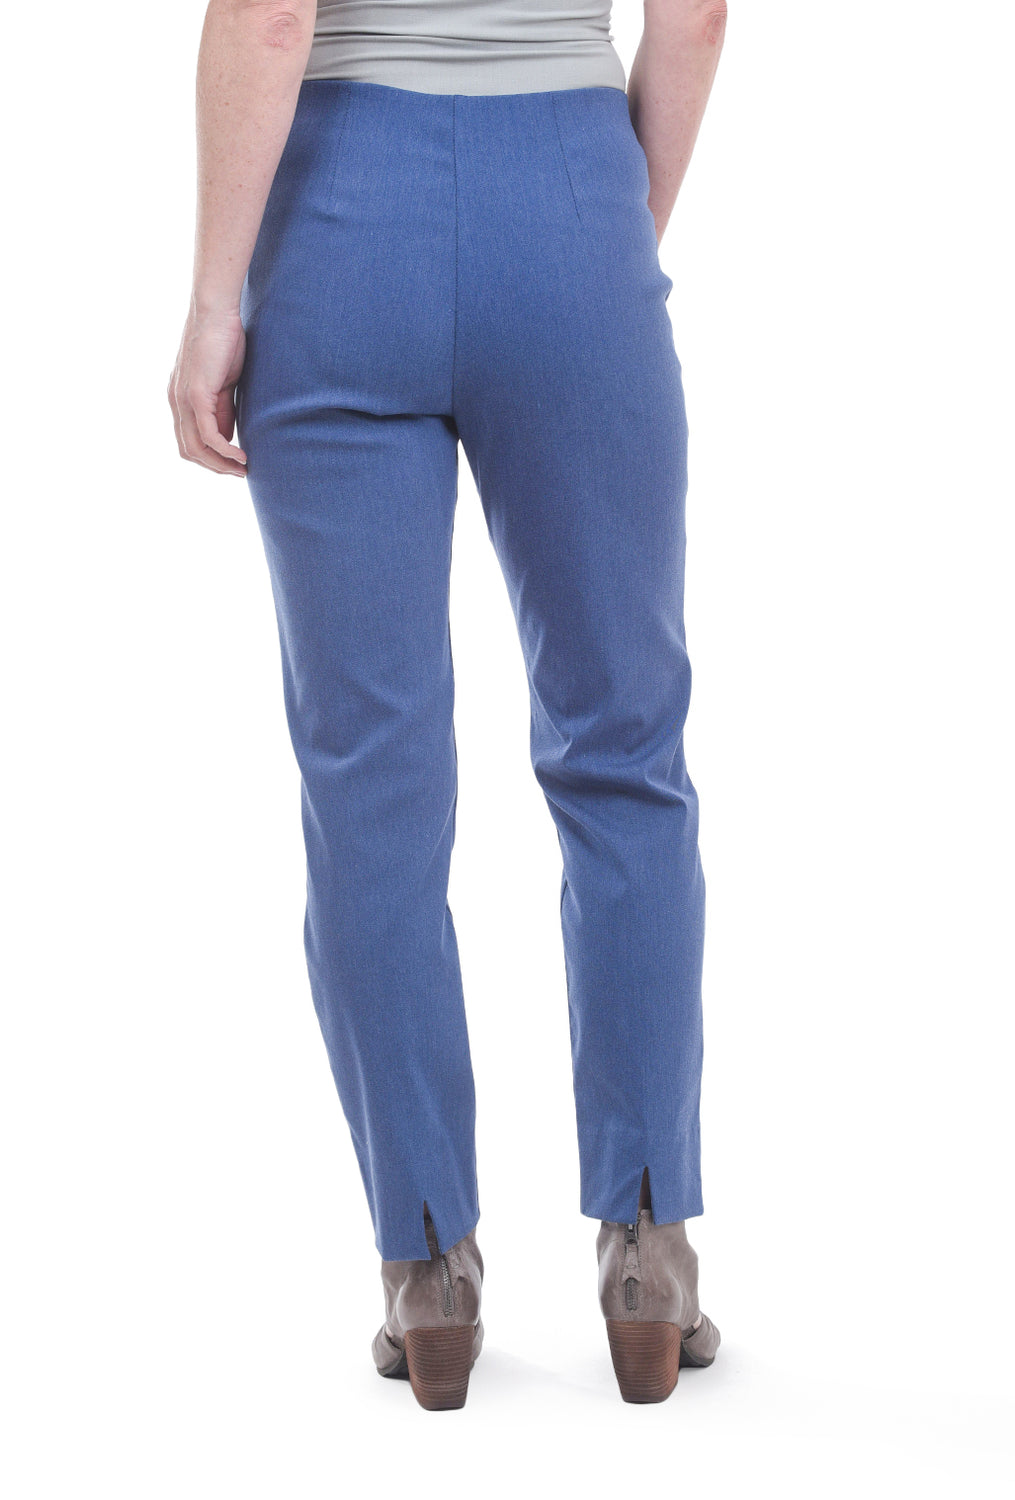 Equestrian Milo Pant, Blue Chambray